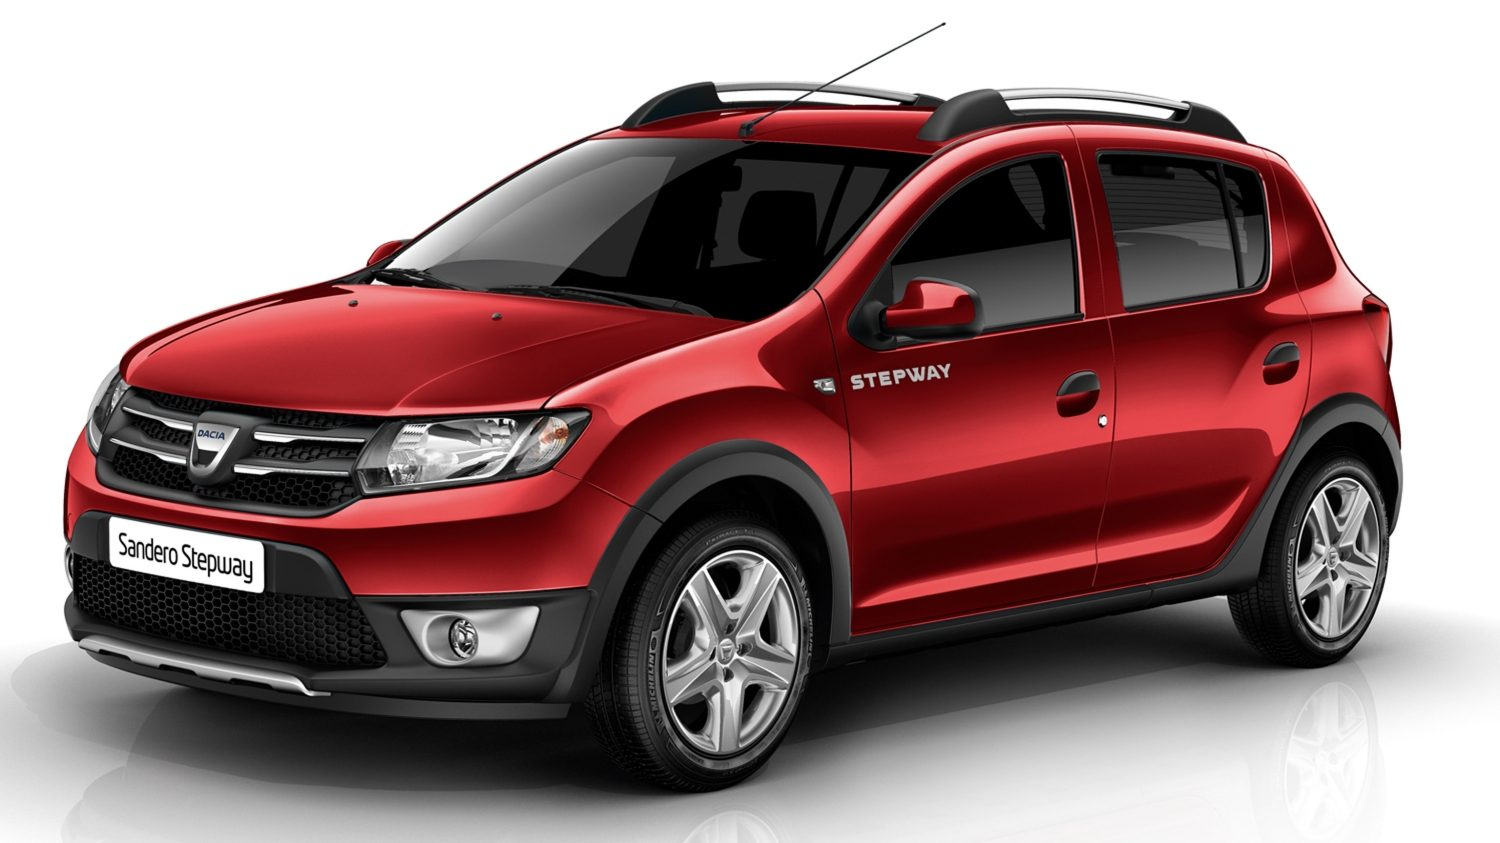 2018 dacia sandero stepway redesign new suv price new suv price. Black Bedroom Furniture Sets. Home Design Ideas